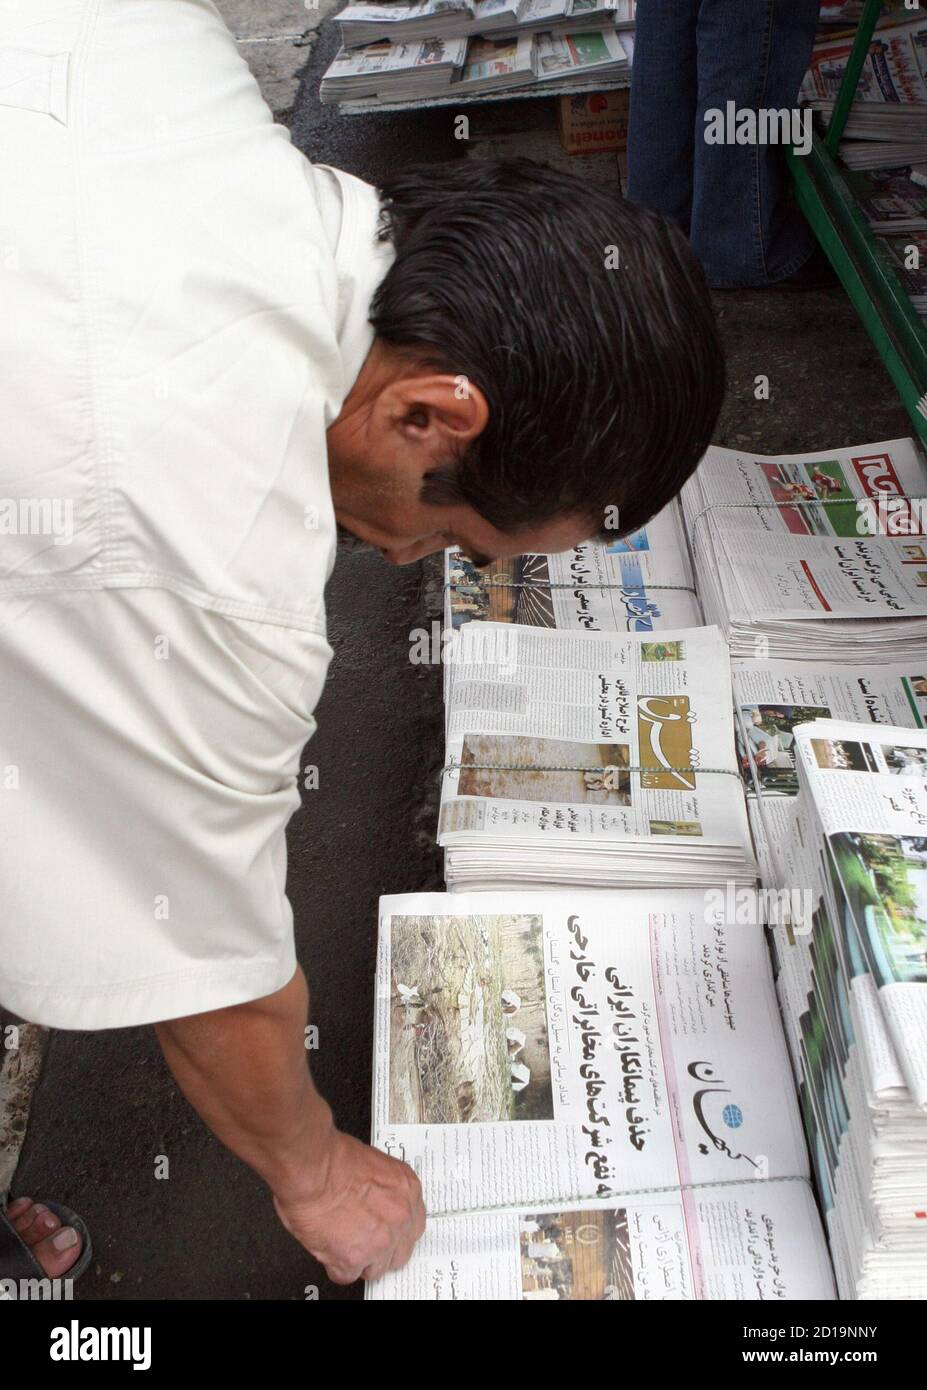 An Iranian man reads newspapers at a newsstand in Tehran august 11, 2005. Iran began breaking U.N. seals at a uranium processing plant on August 10th, U.N. and Iranian officials said, a step on the road to production of enriched uranium that could be used for nuclear weapons. 'They have begun breaking the seals,' International Atomic Energy Agency (IAEA) spokesman Mark Gwozdecky said. REUTERS/Raheb Homavandi  CJF/RH/LA Stock Photo